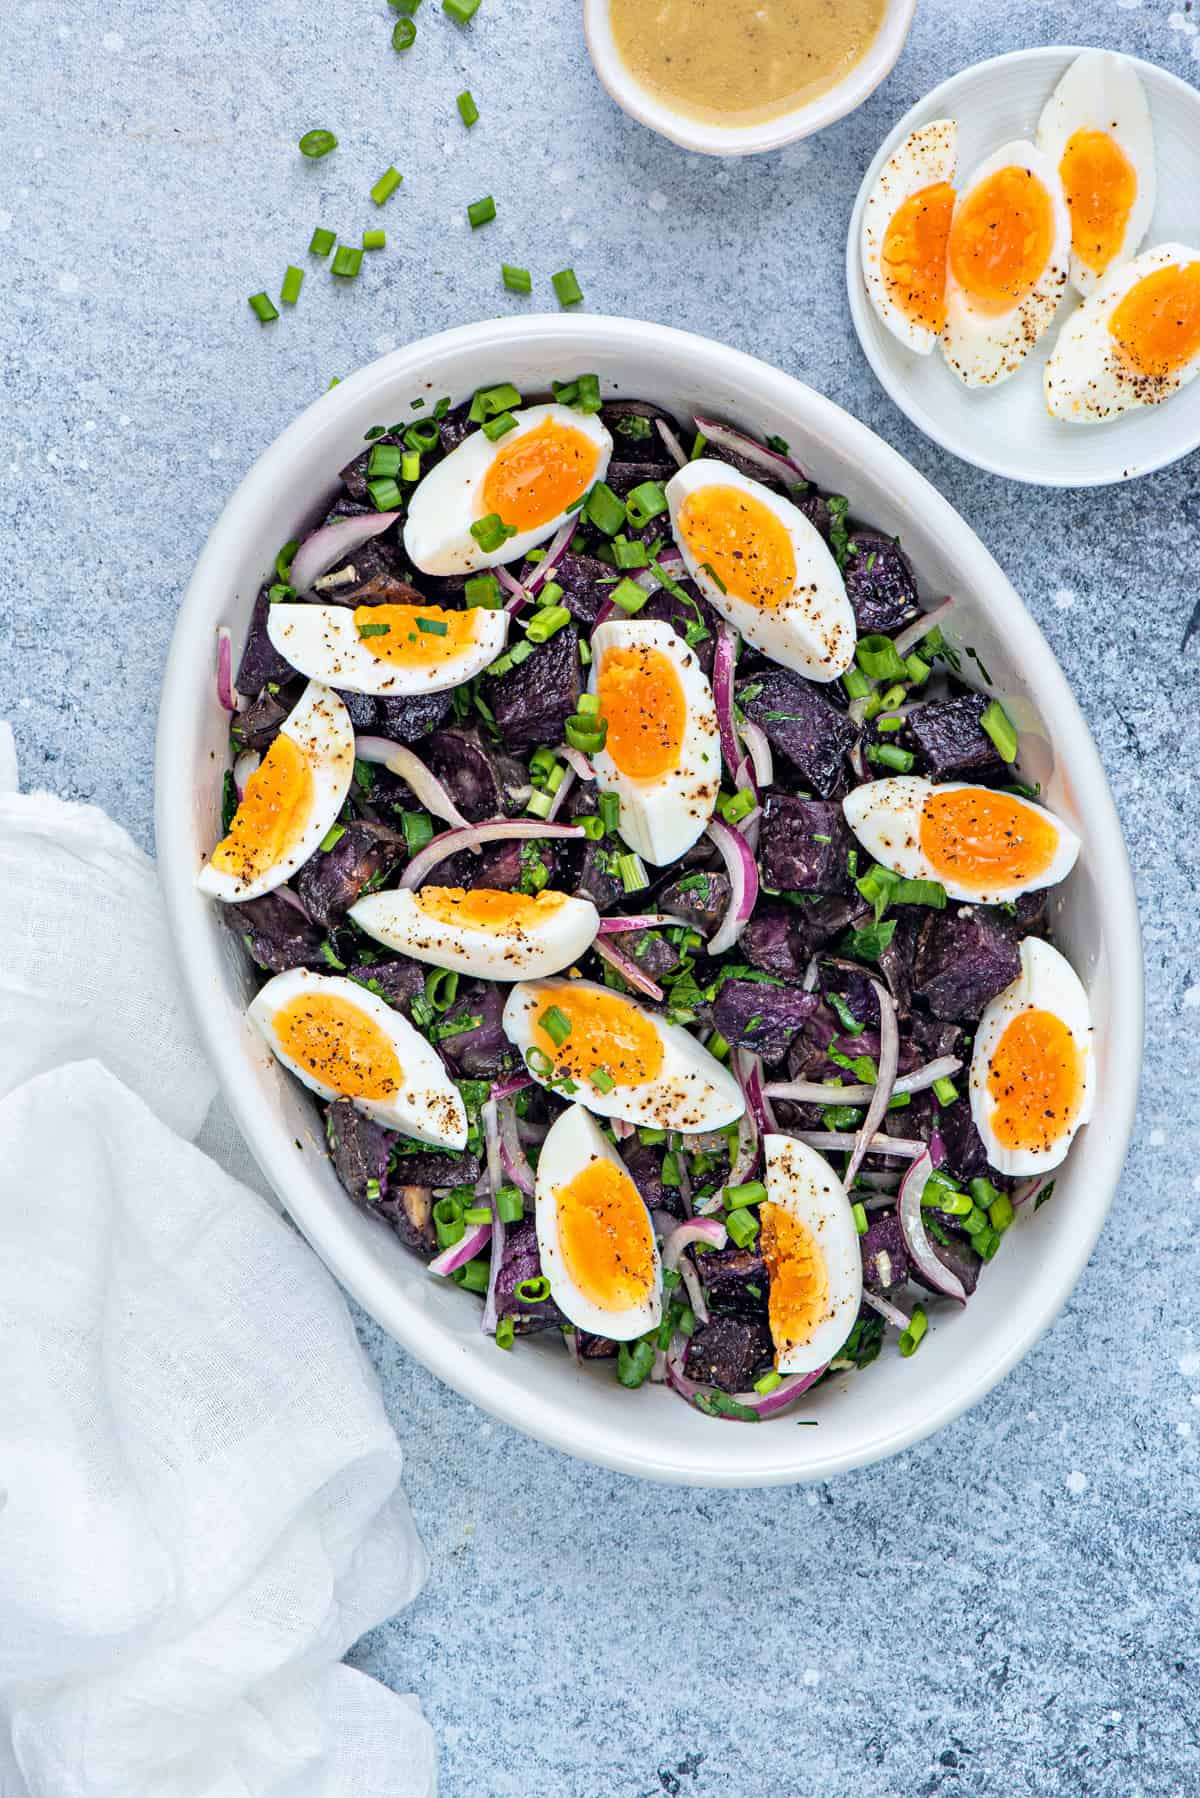 warm purple potato salad in white serving dish with a garnish of soft boiled eggs